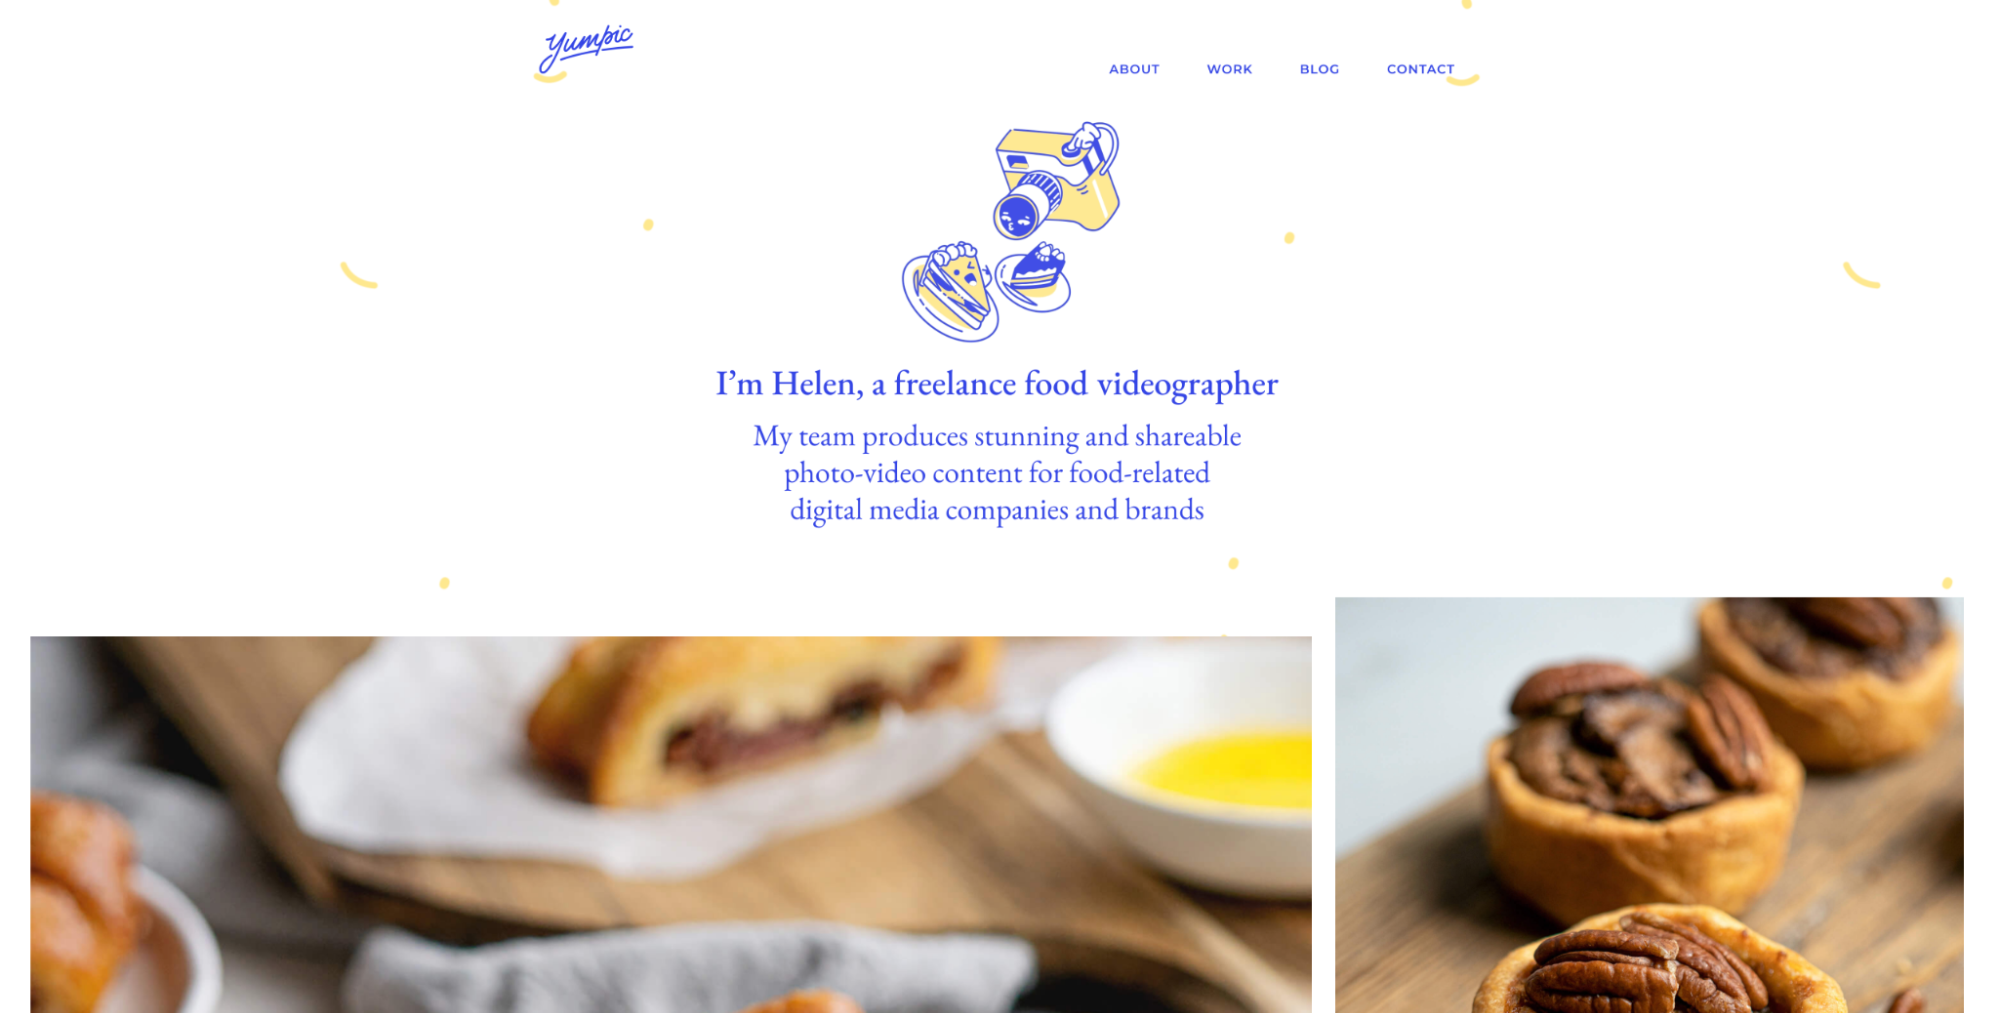 Example of a freelance videographer's website.